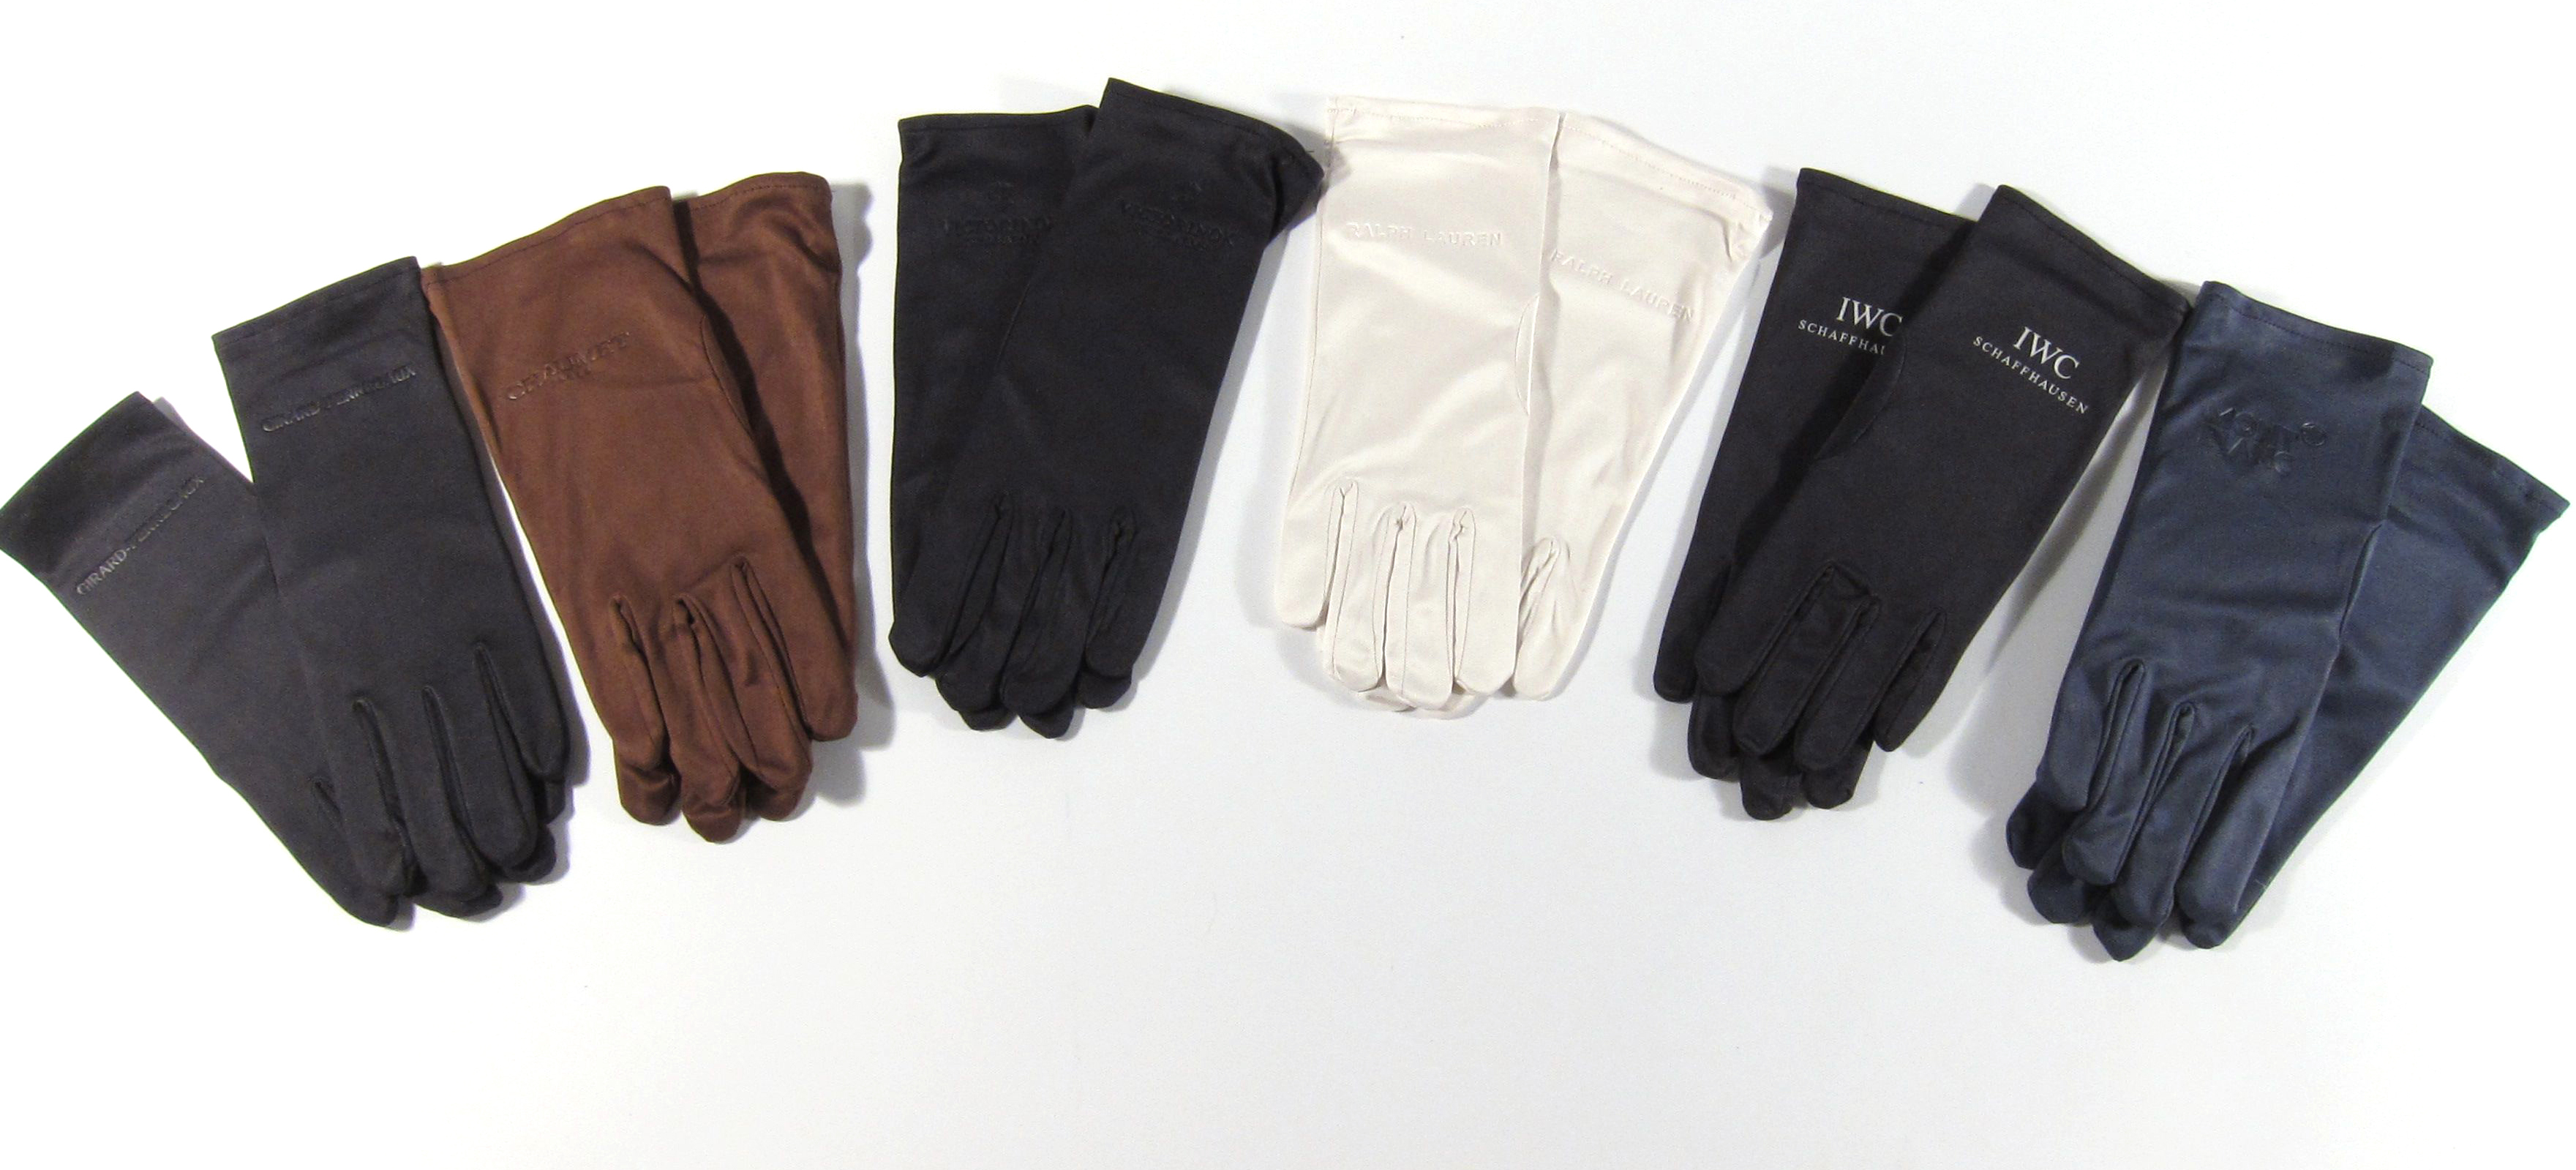 Black microfiber jewelry gloves - Jewelersgloves